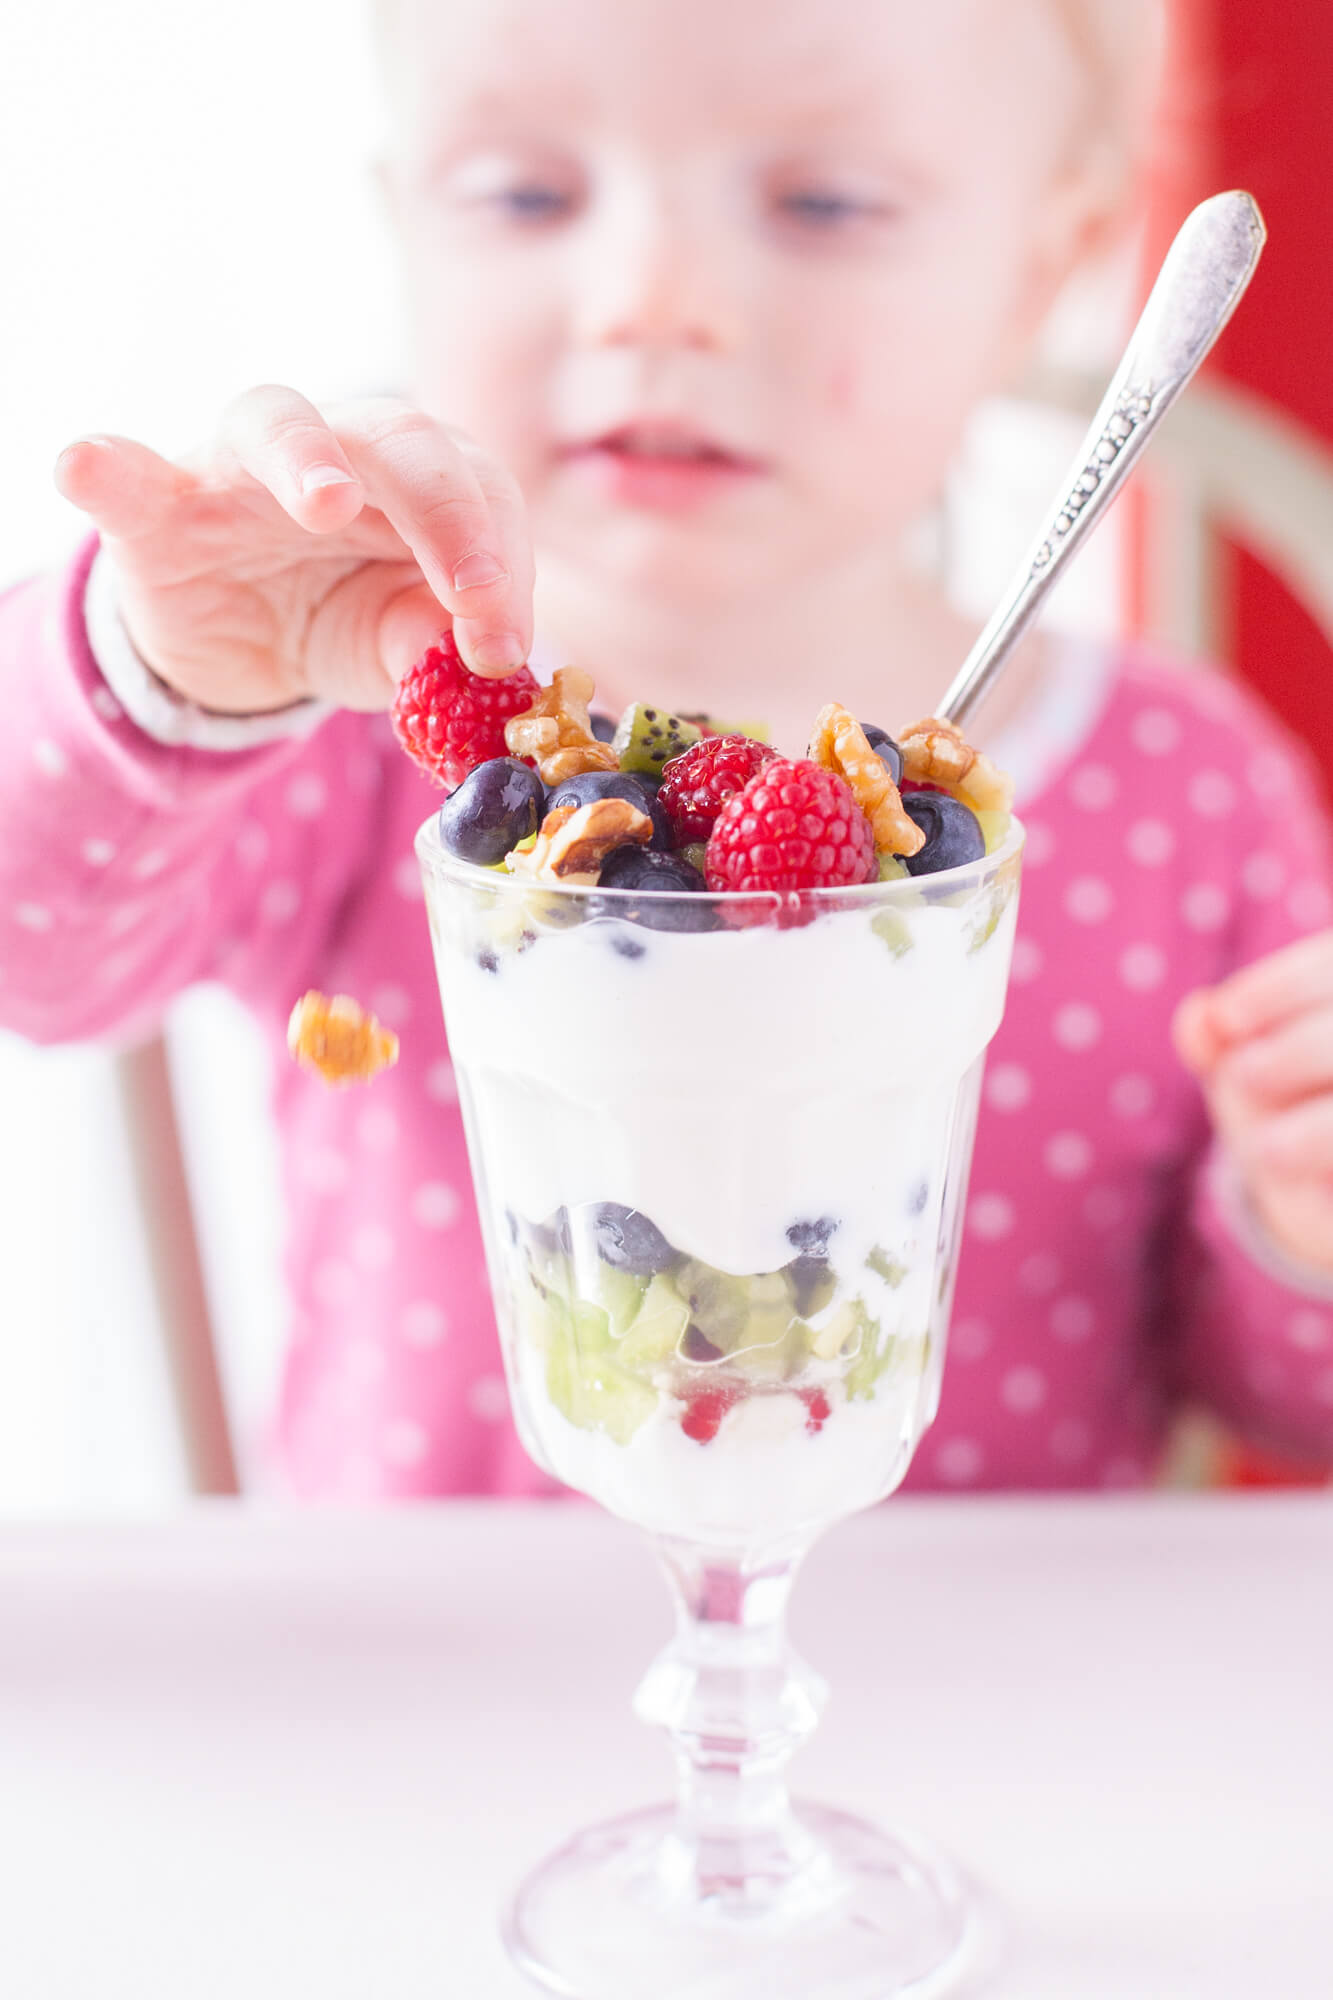 Fruit and Yogurt Parfait for Kids